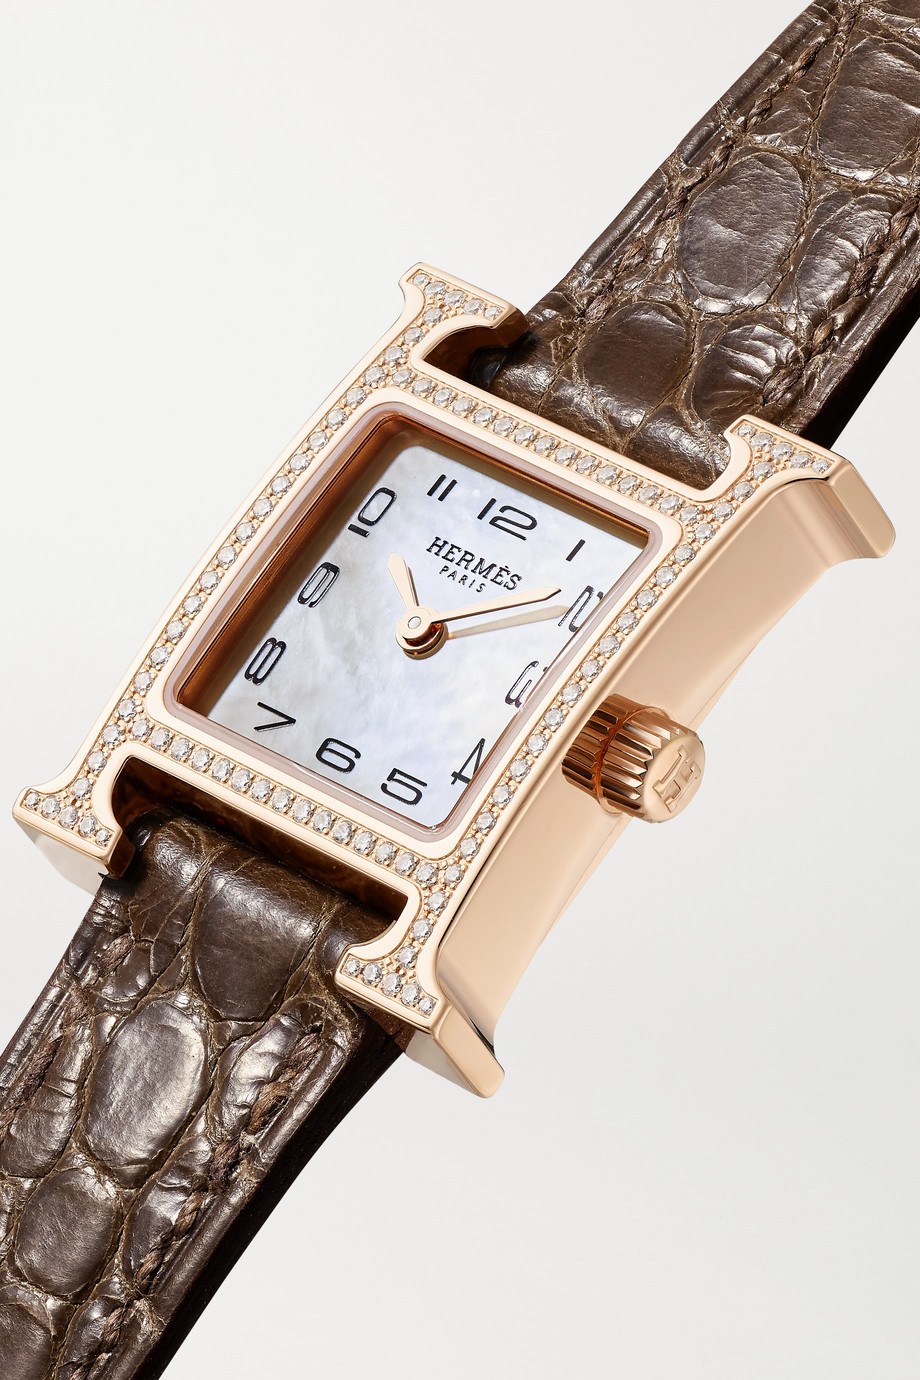 Hermès Timepieces Heure H 17.2mm very small 18-karat rose gold, alligator, mother-of-pearl and diamond watch